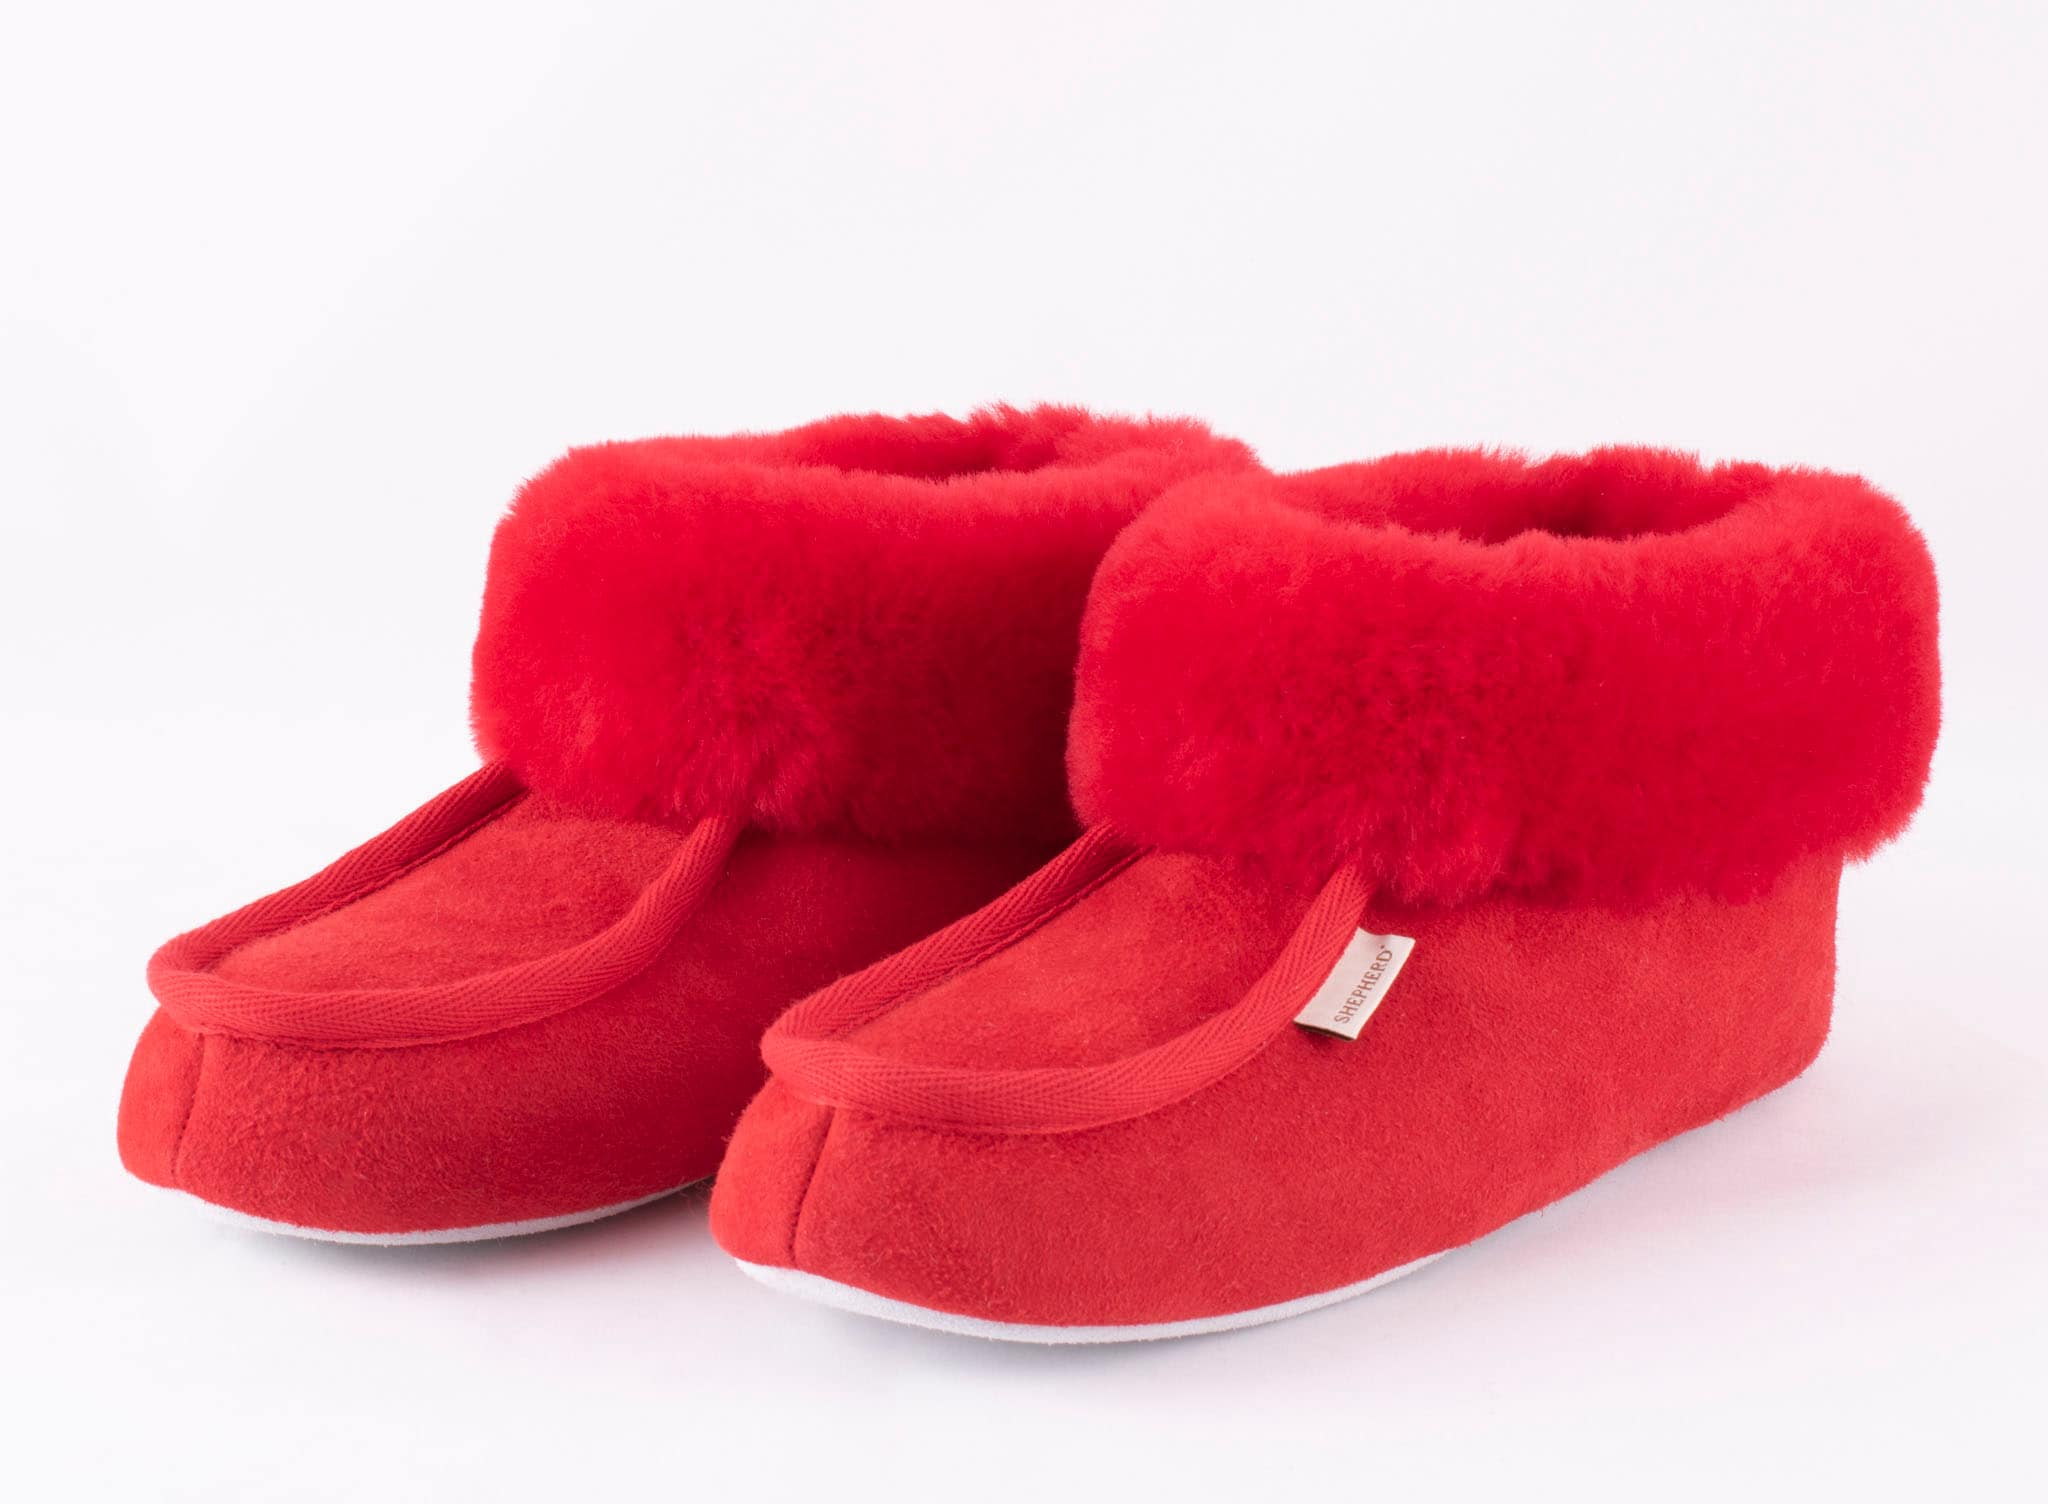 Shepherd Moa slippers